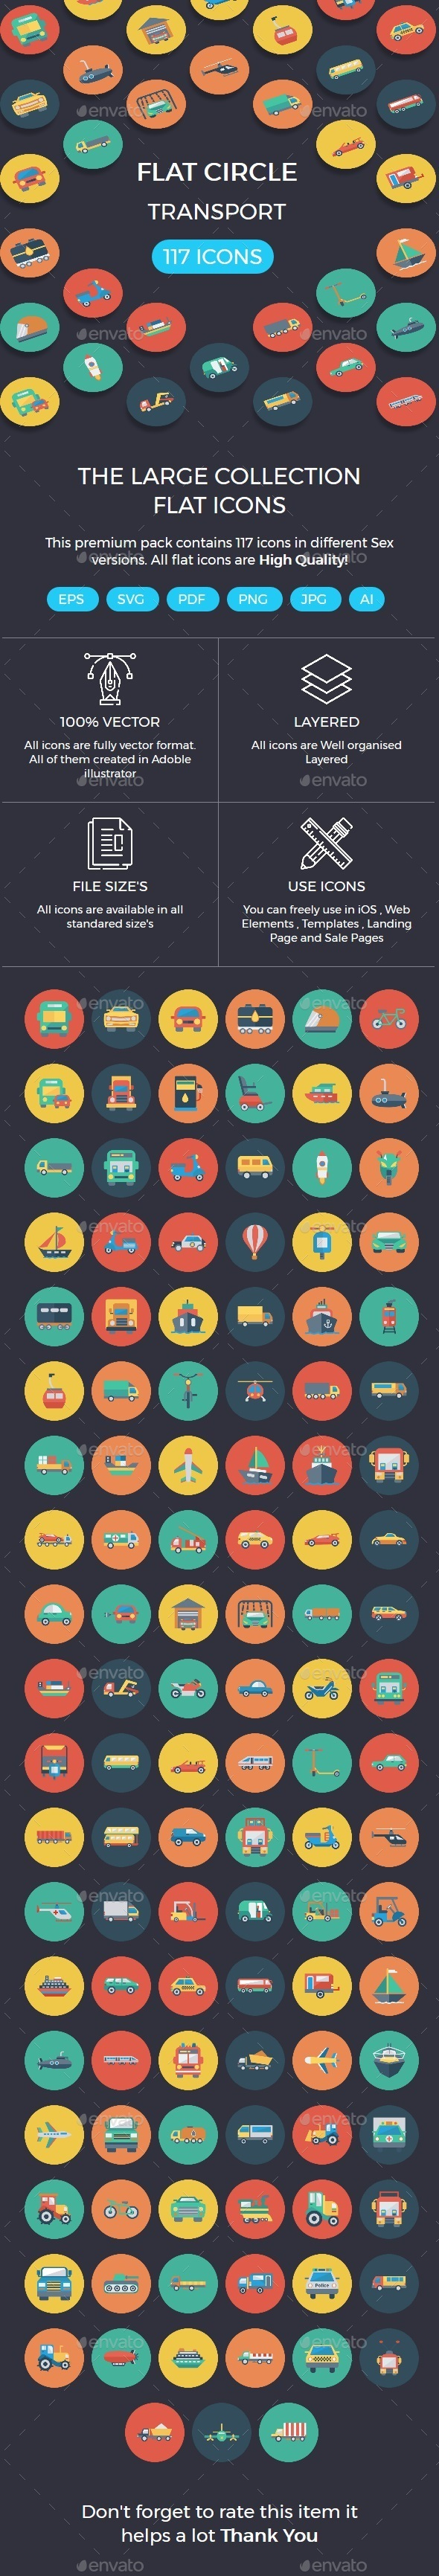 Transport Flat Circle Icons - Business Icons